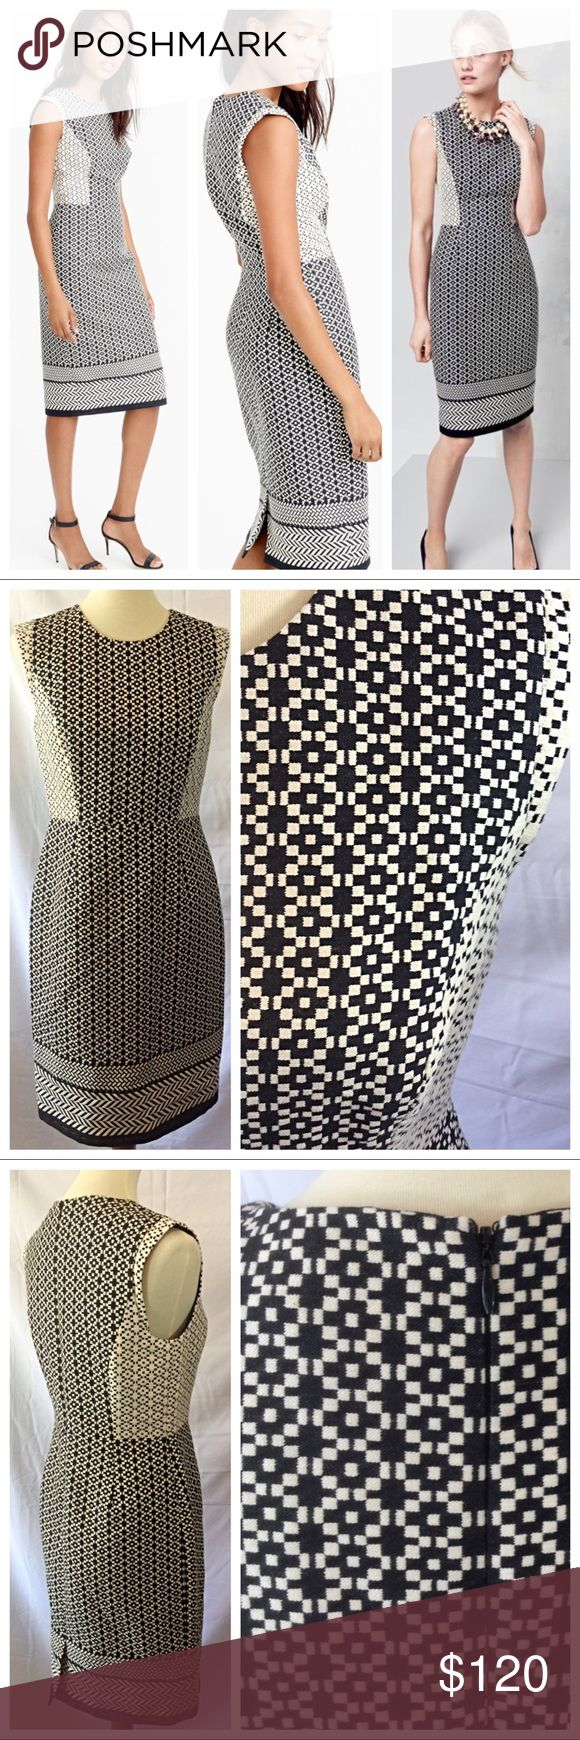 Cute J Crew Paneled Geometric Dress